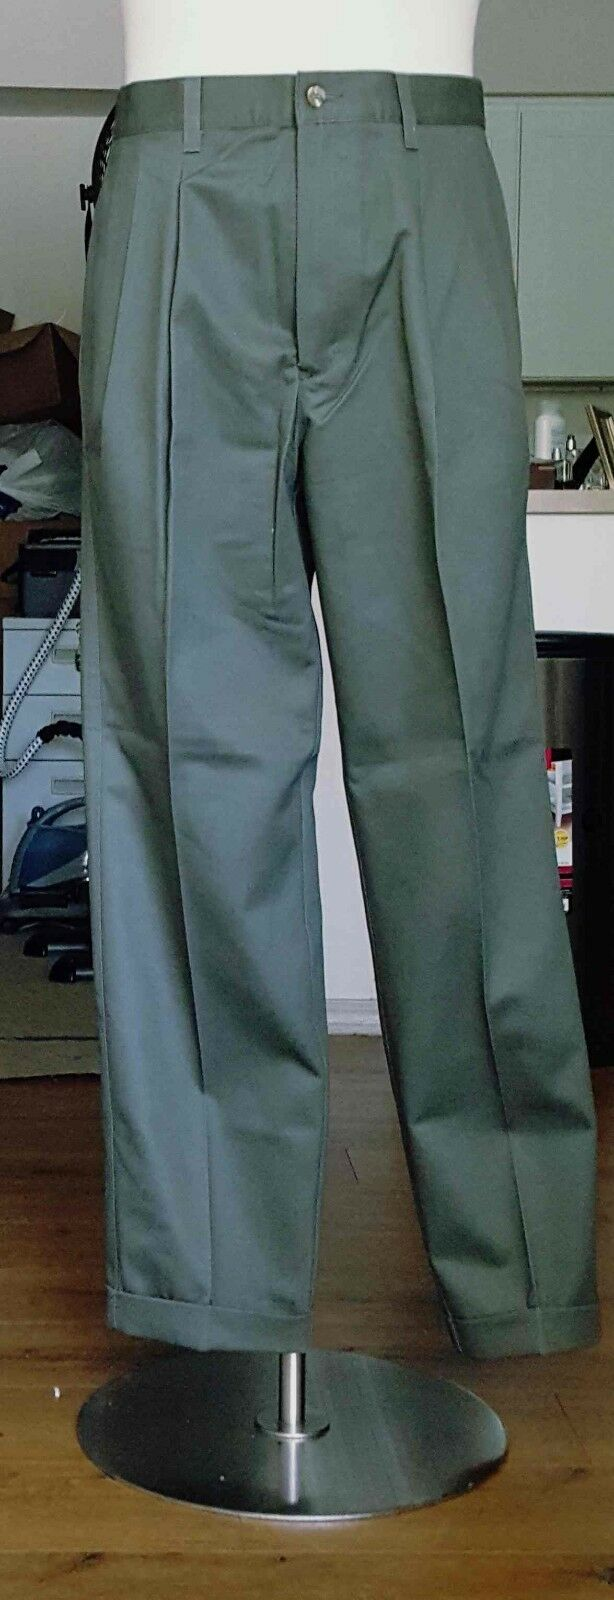 Eddie Bauer Wrinkle Resistant Classic Fit Dress Pleated Cuff Pants Size 34 x 29